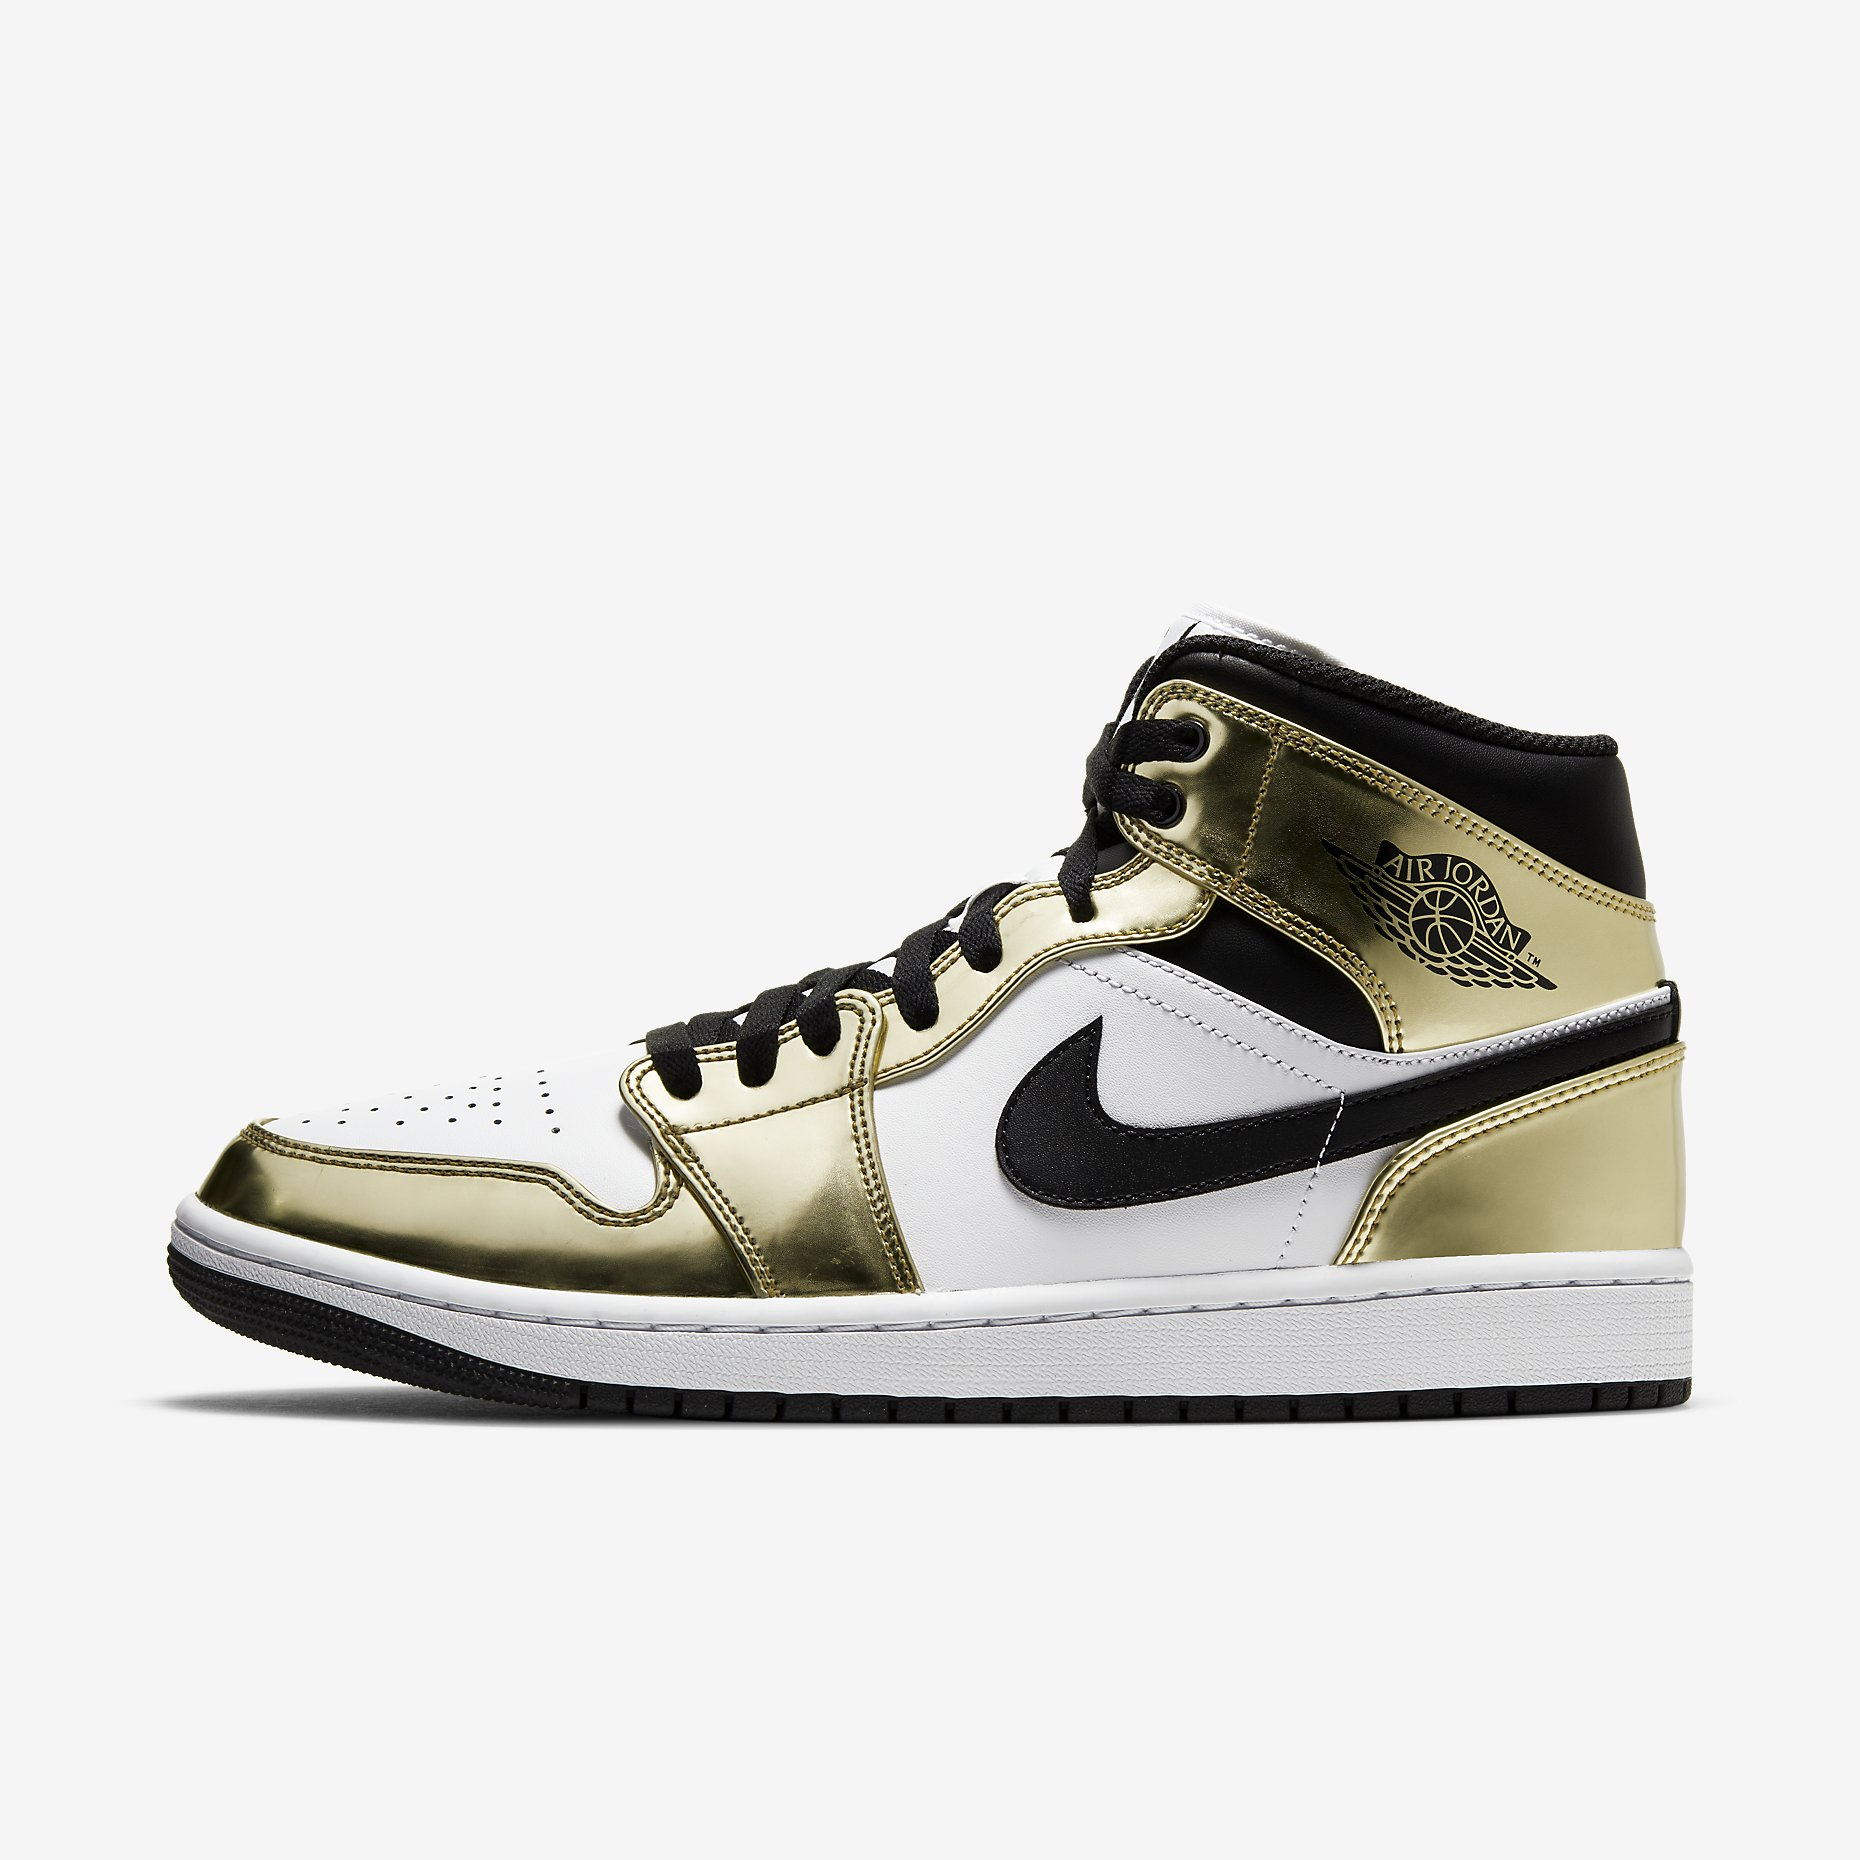 Air Jordan 1 Mid SE 'Metallic Gold'}